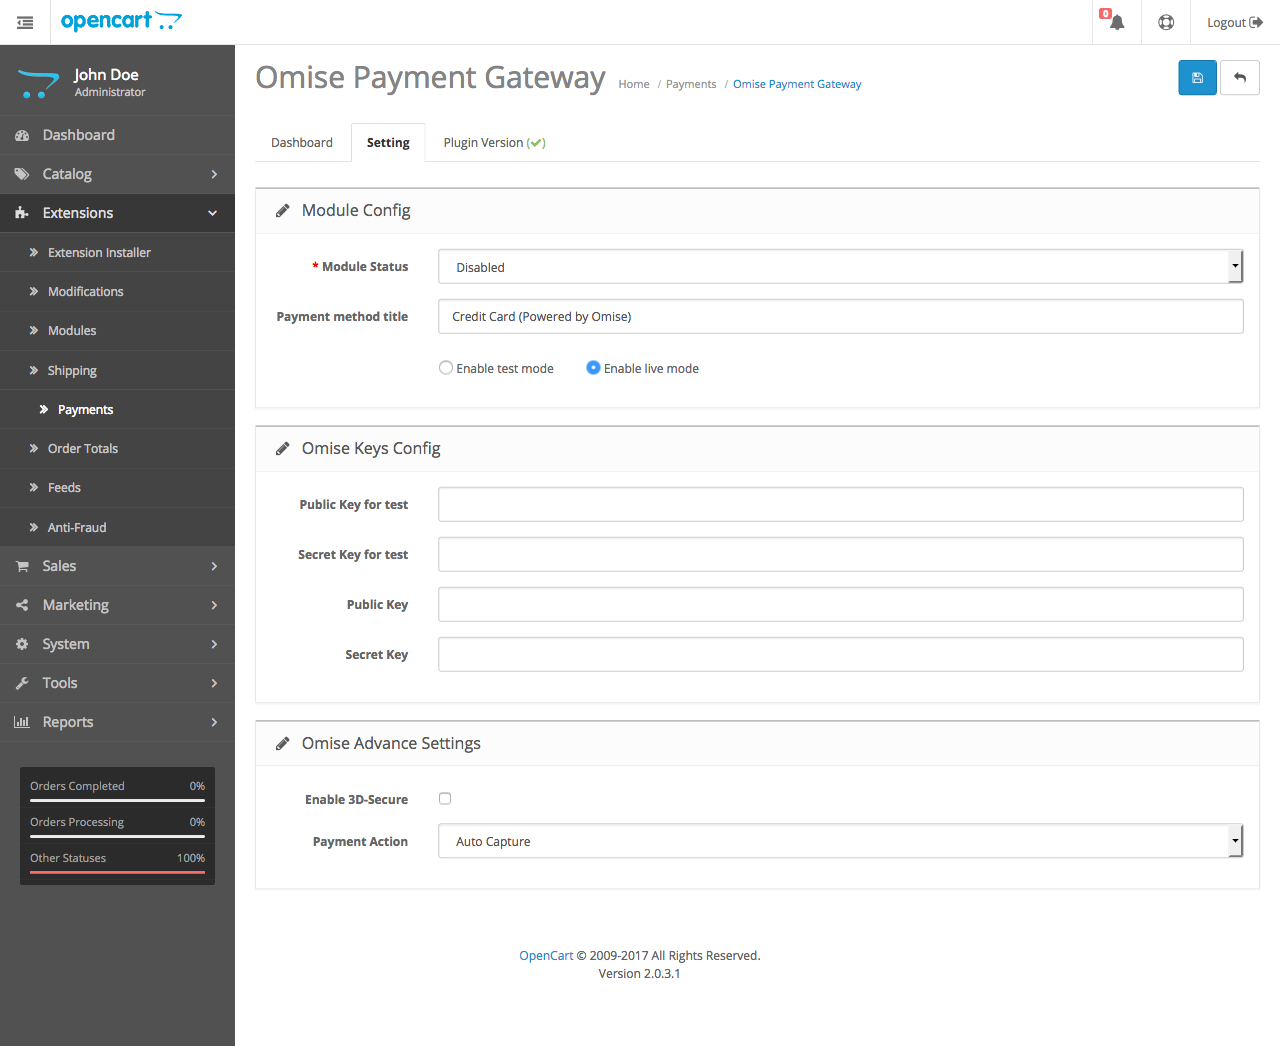 Omise Payment Gateway setting page